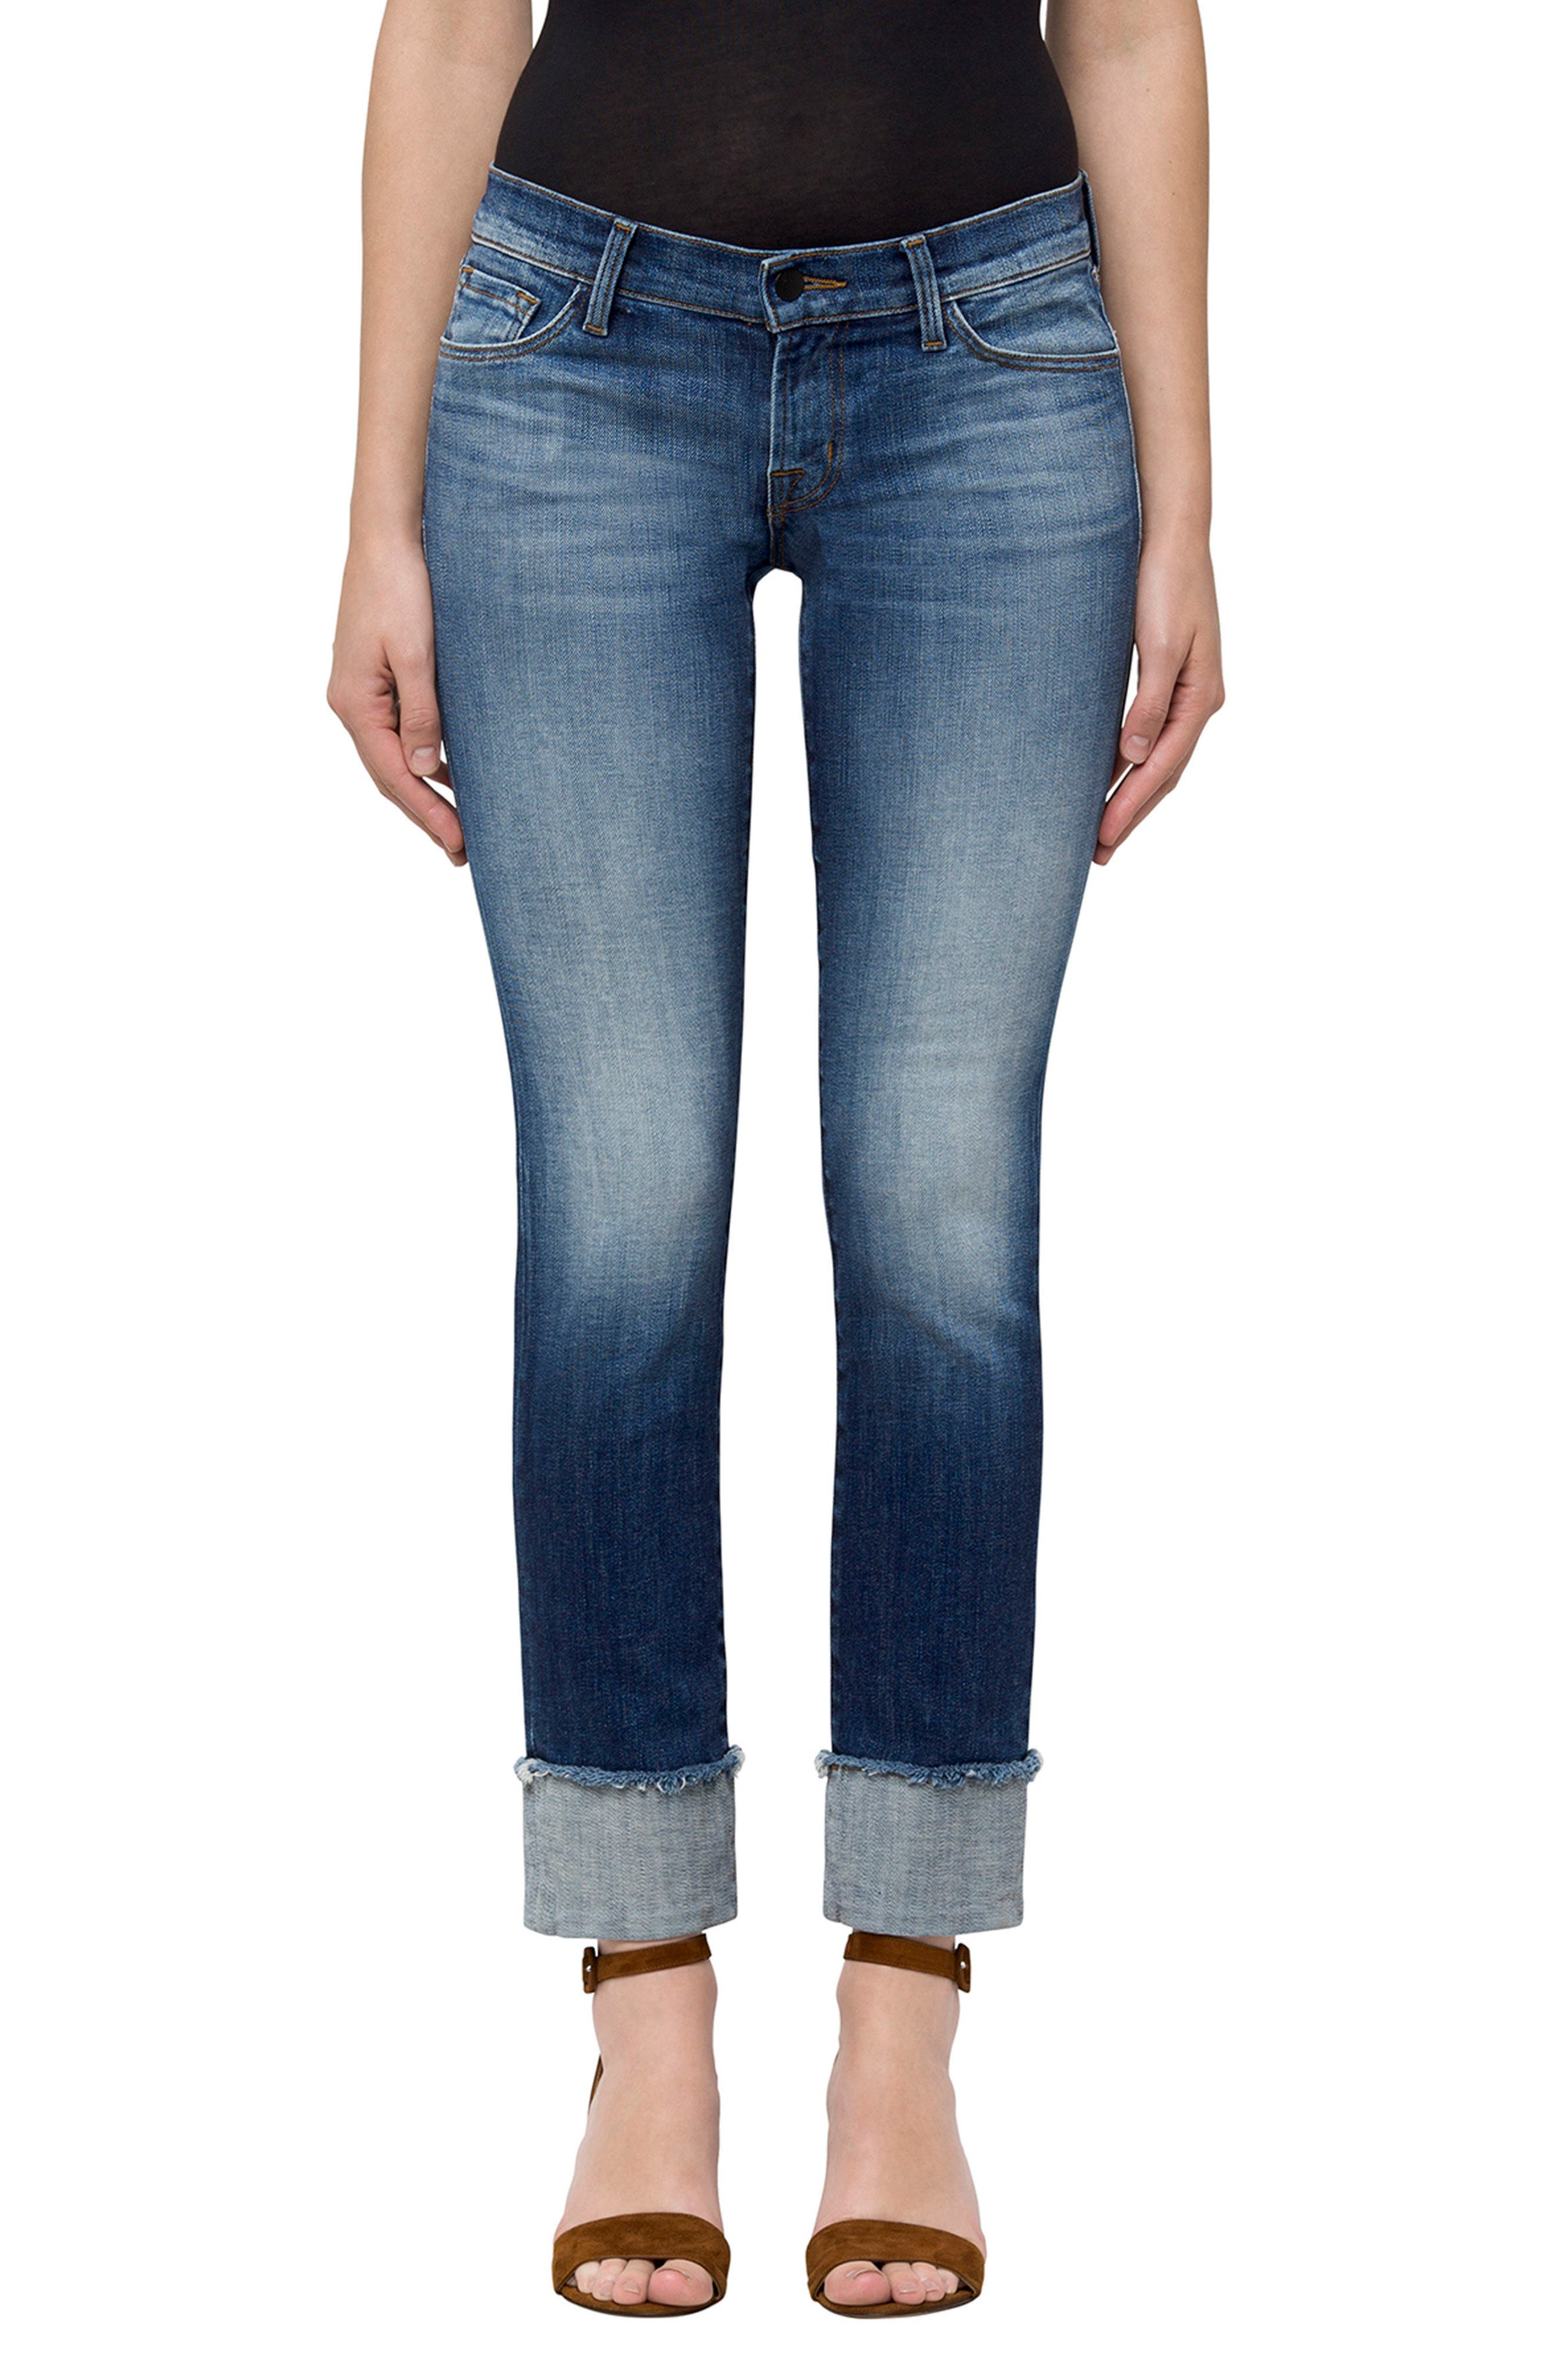 Hipster Low Rise Jeans,                             Main thumbnail 1, color,                             Jasper